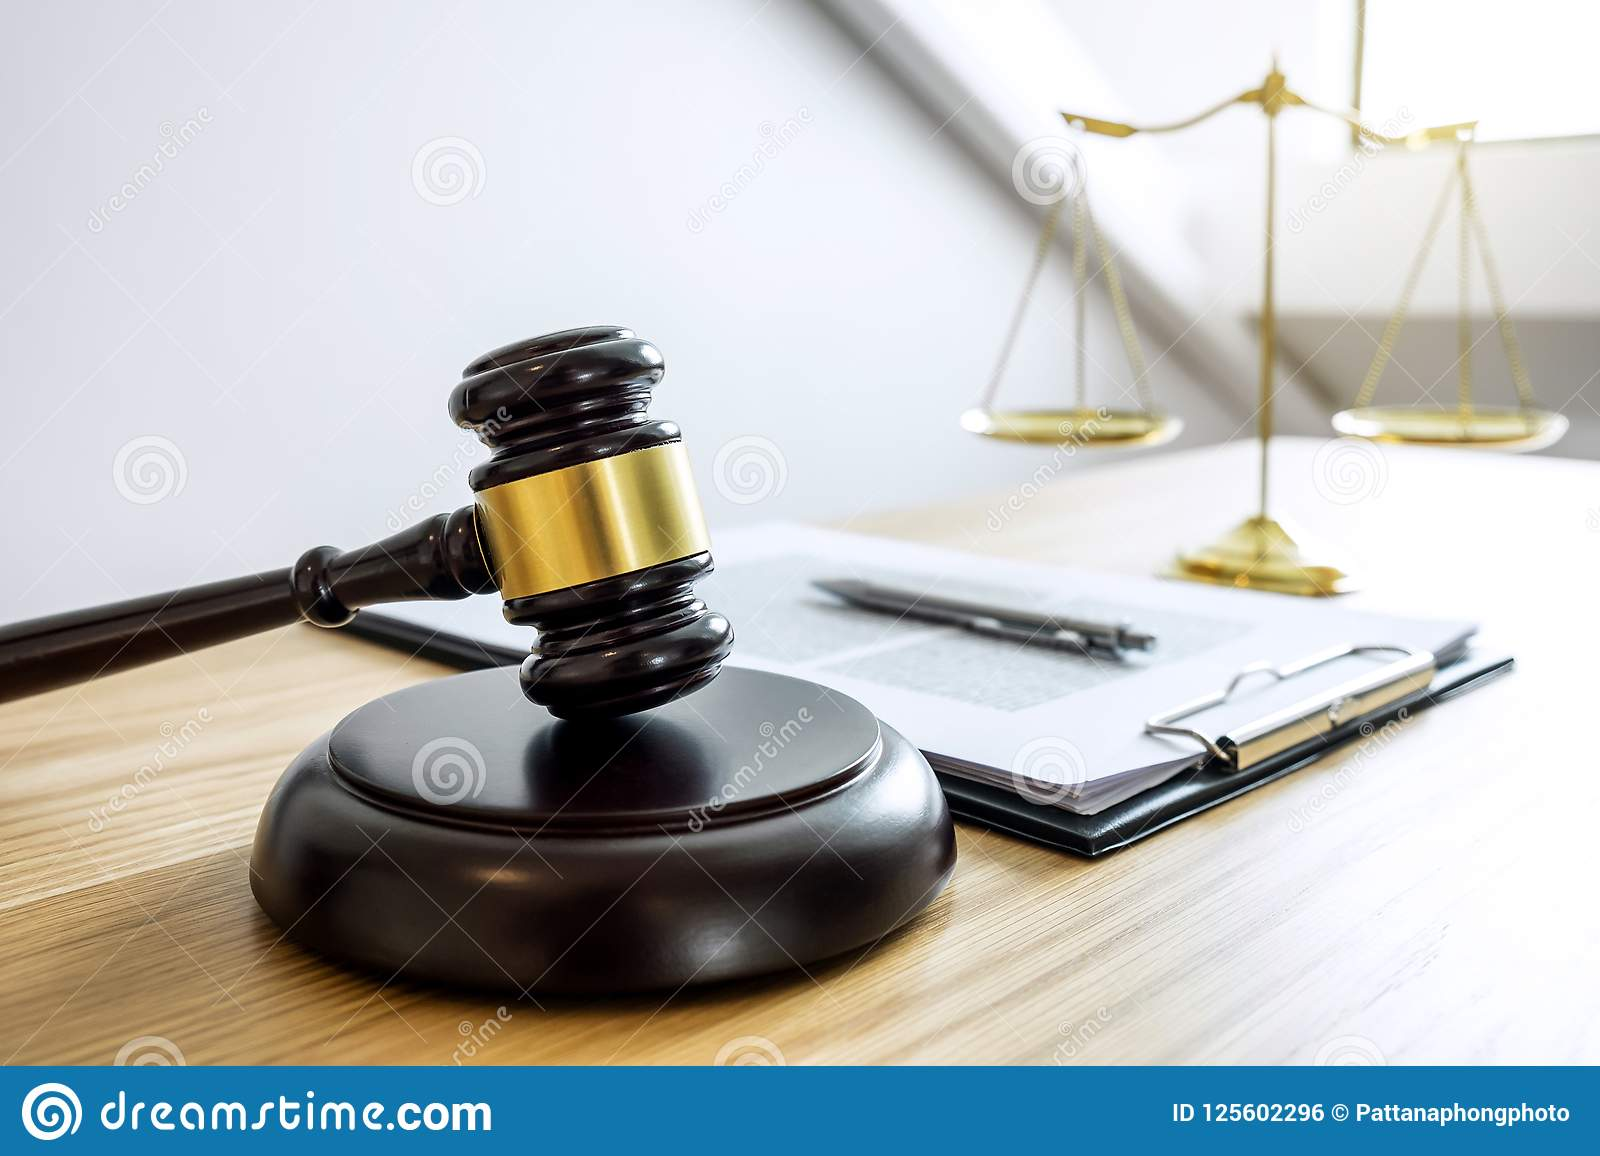 Scales of justice and Gavel on sounding block, object and law bo